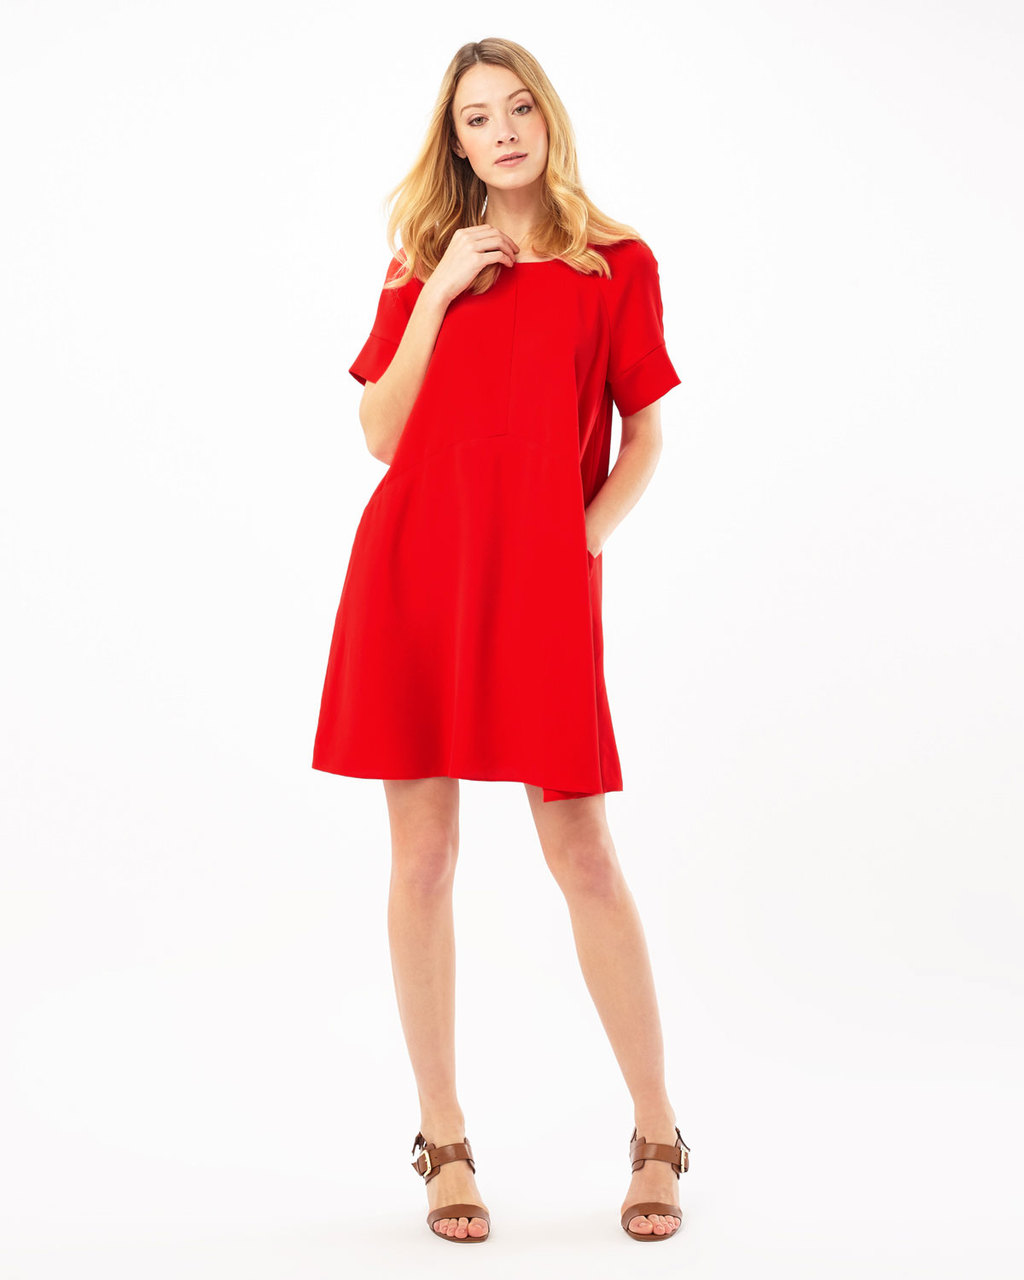 Zelda Dress - style: shift; pattern: plain; predominant colour: true red; occasions: casual; length: just above the knee; fit: soft a-line; fibres: polyester/polyamide - 100%; neckline: crew; sleeve length: short sleeve; sleeve style: standard; pattern type: fabric; texture group: other - light to midweight; season: s/s 2016